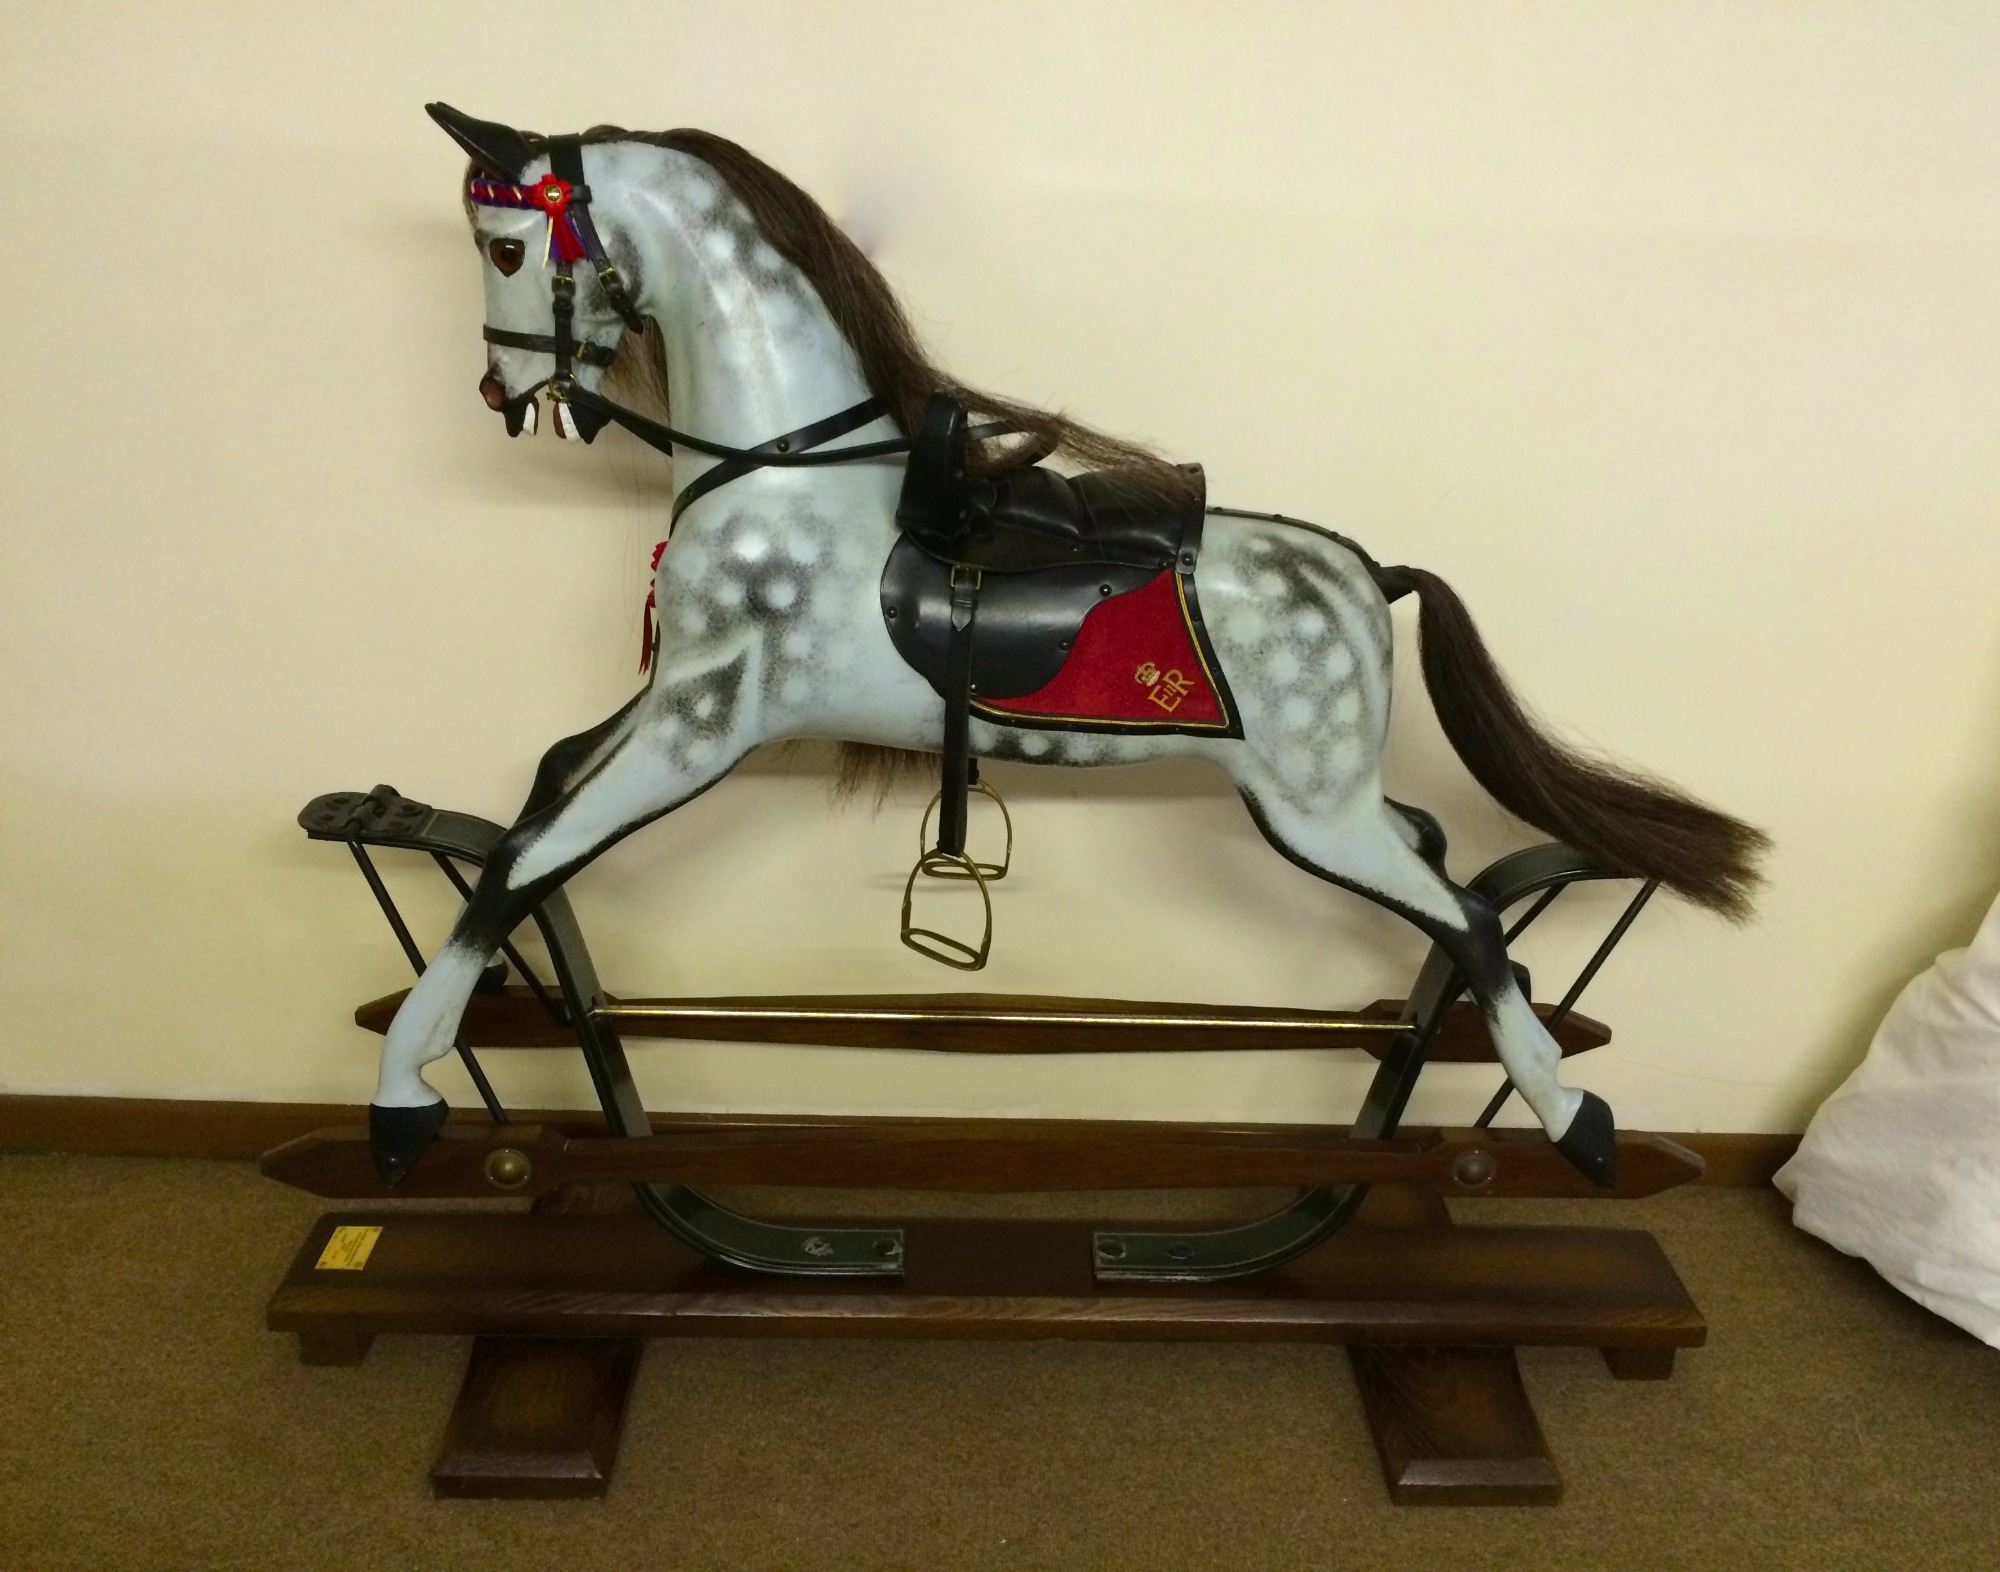 Jubilee springstand rocking horse by Stevenson Brothers